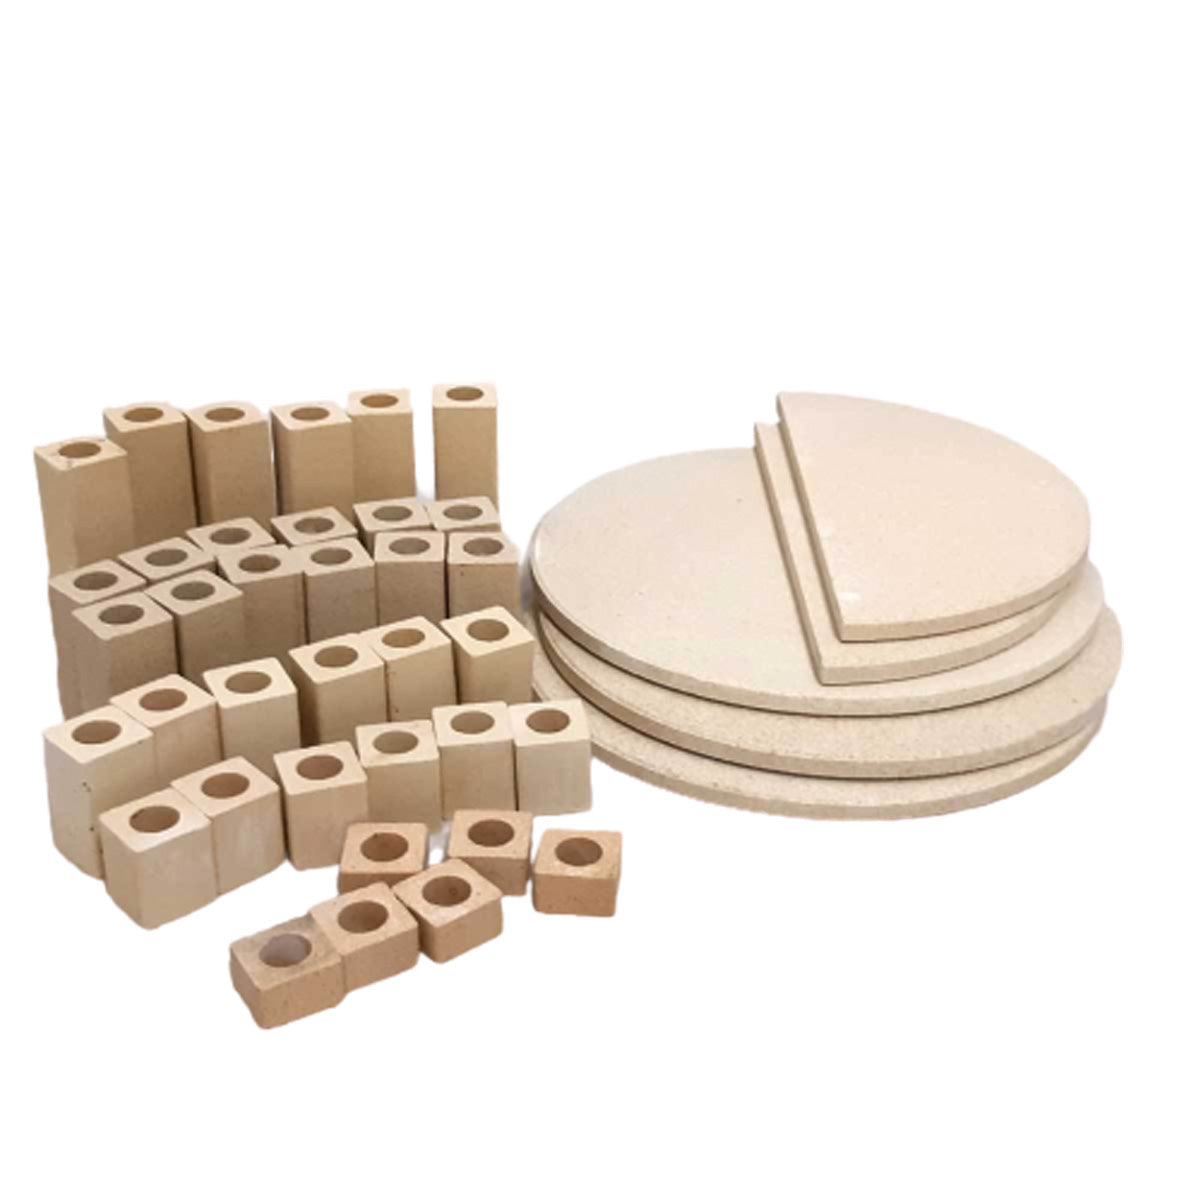 Kiln Furniture Kit No. 2 - For KM822-3 Kilns